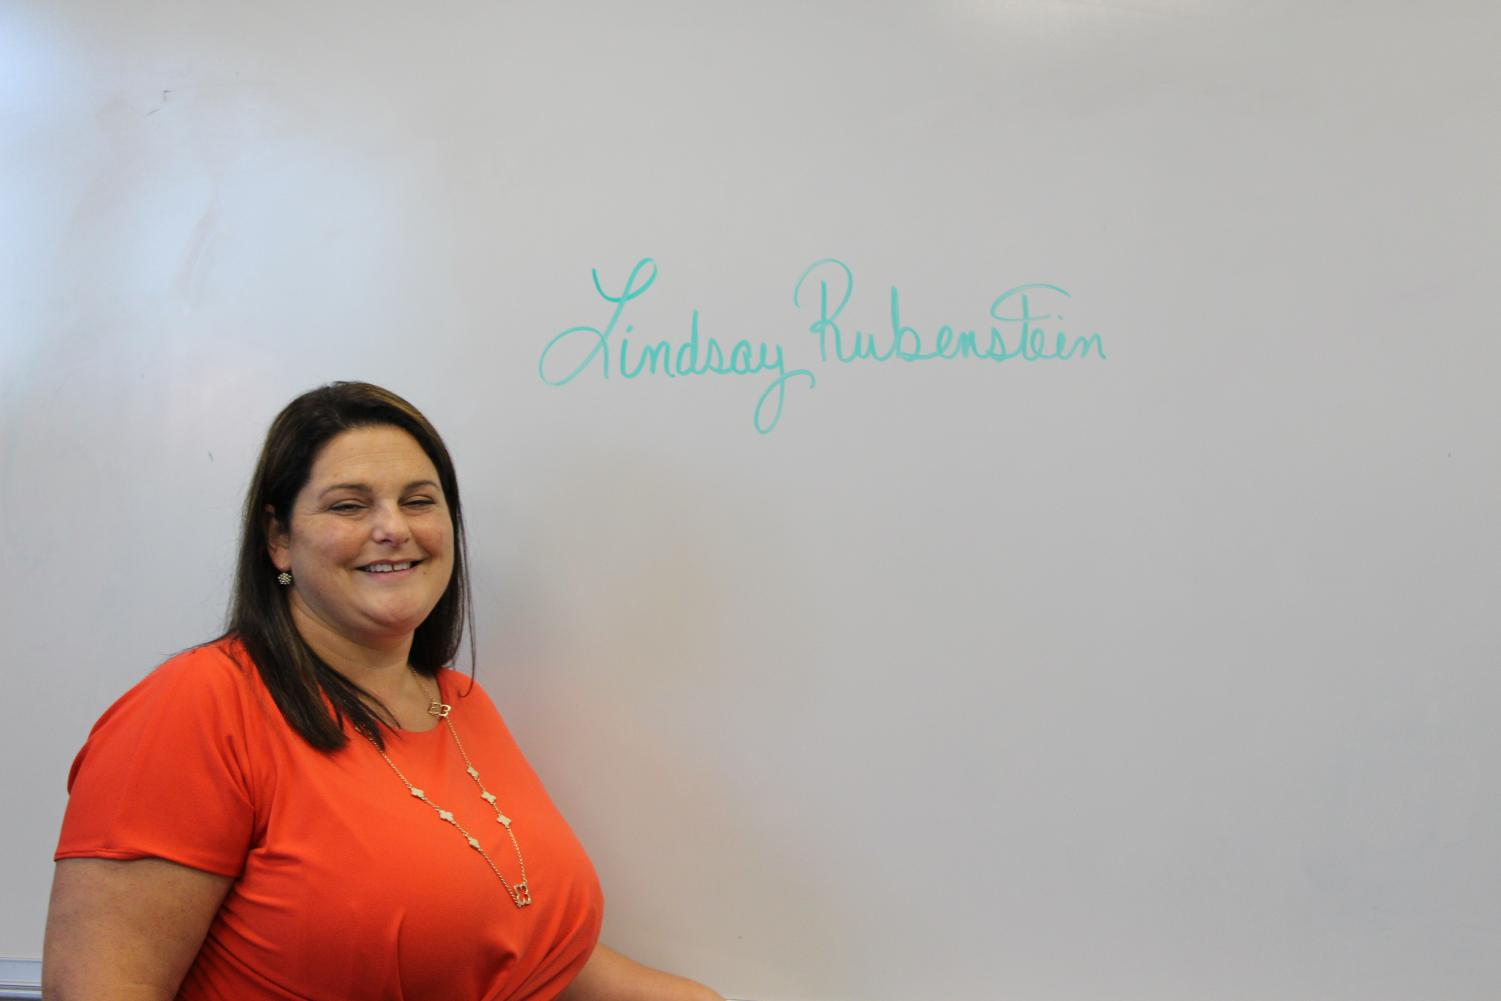 Robinsons new English 1 teacher Lindsay rubenstein.